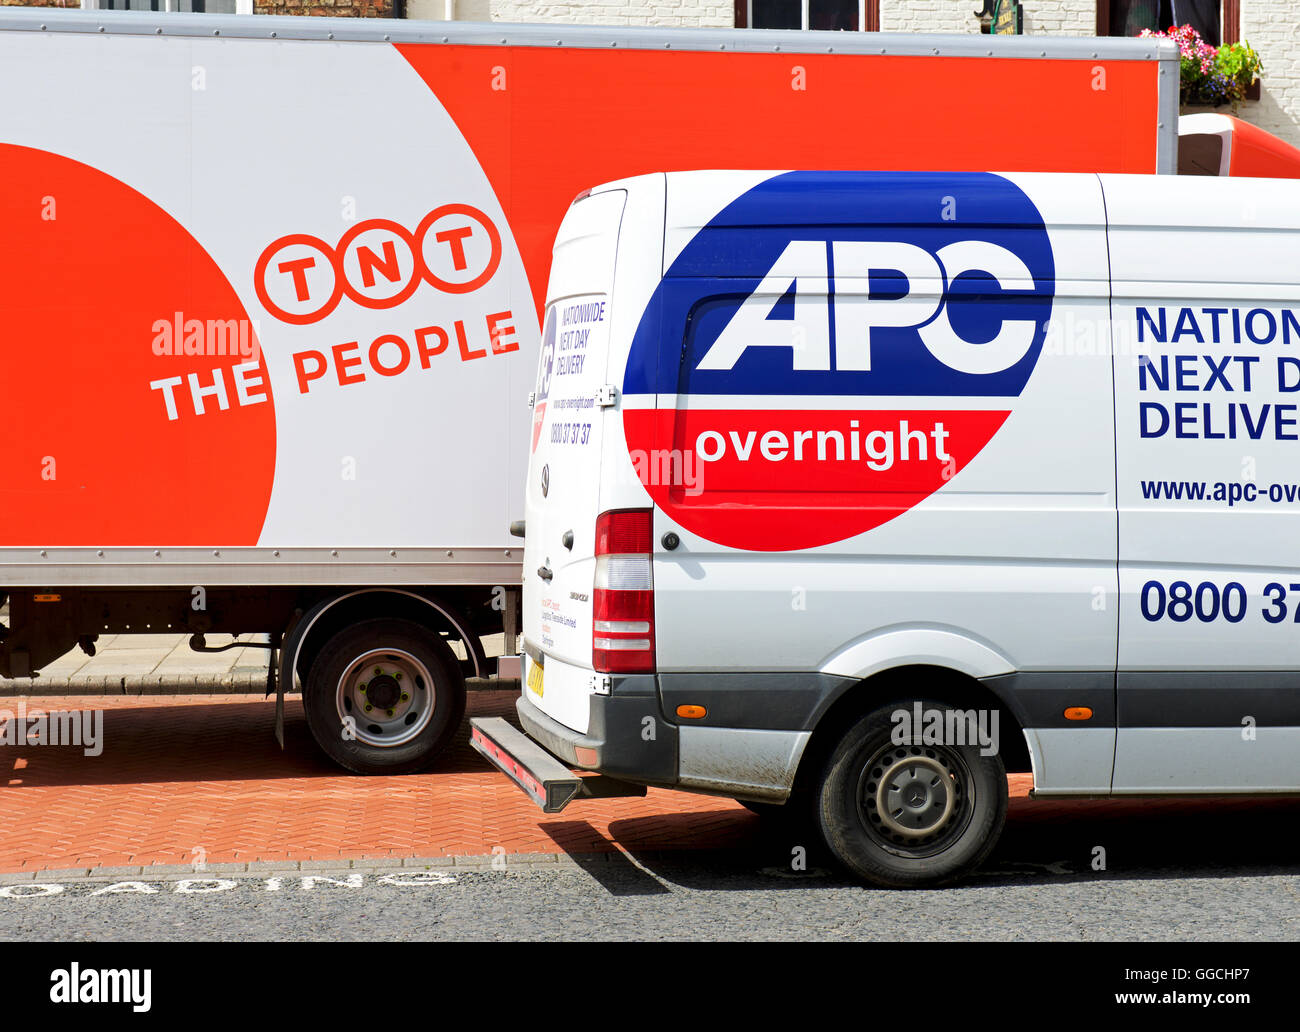 Two delivery vans - TNT and APC - parked together, England UK - Stock Image